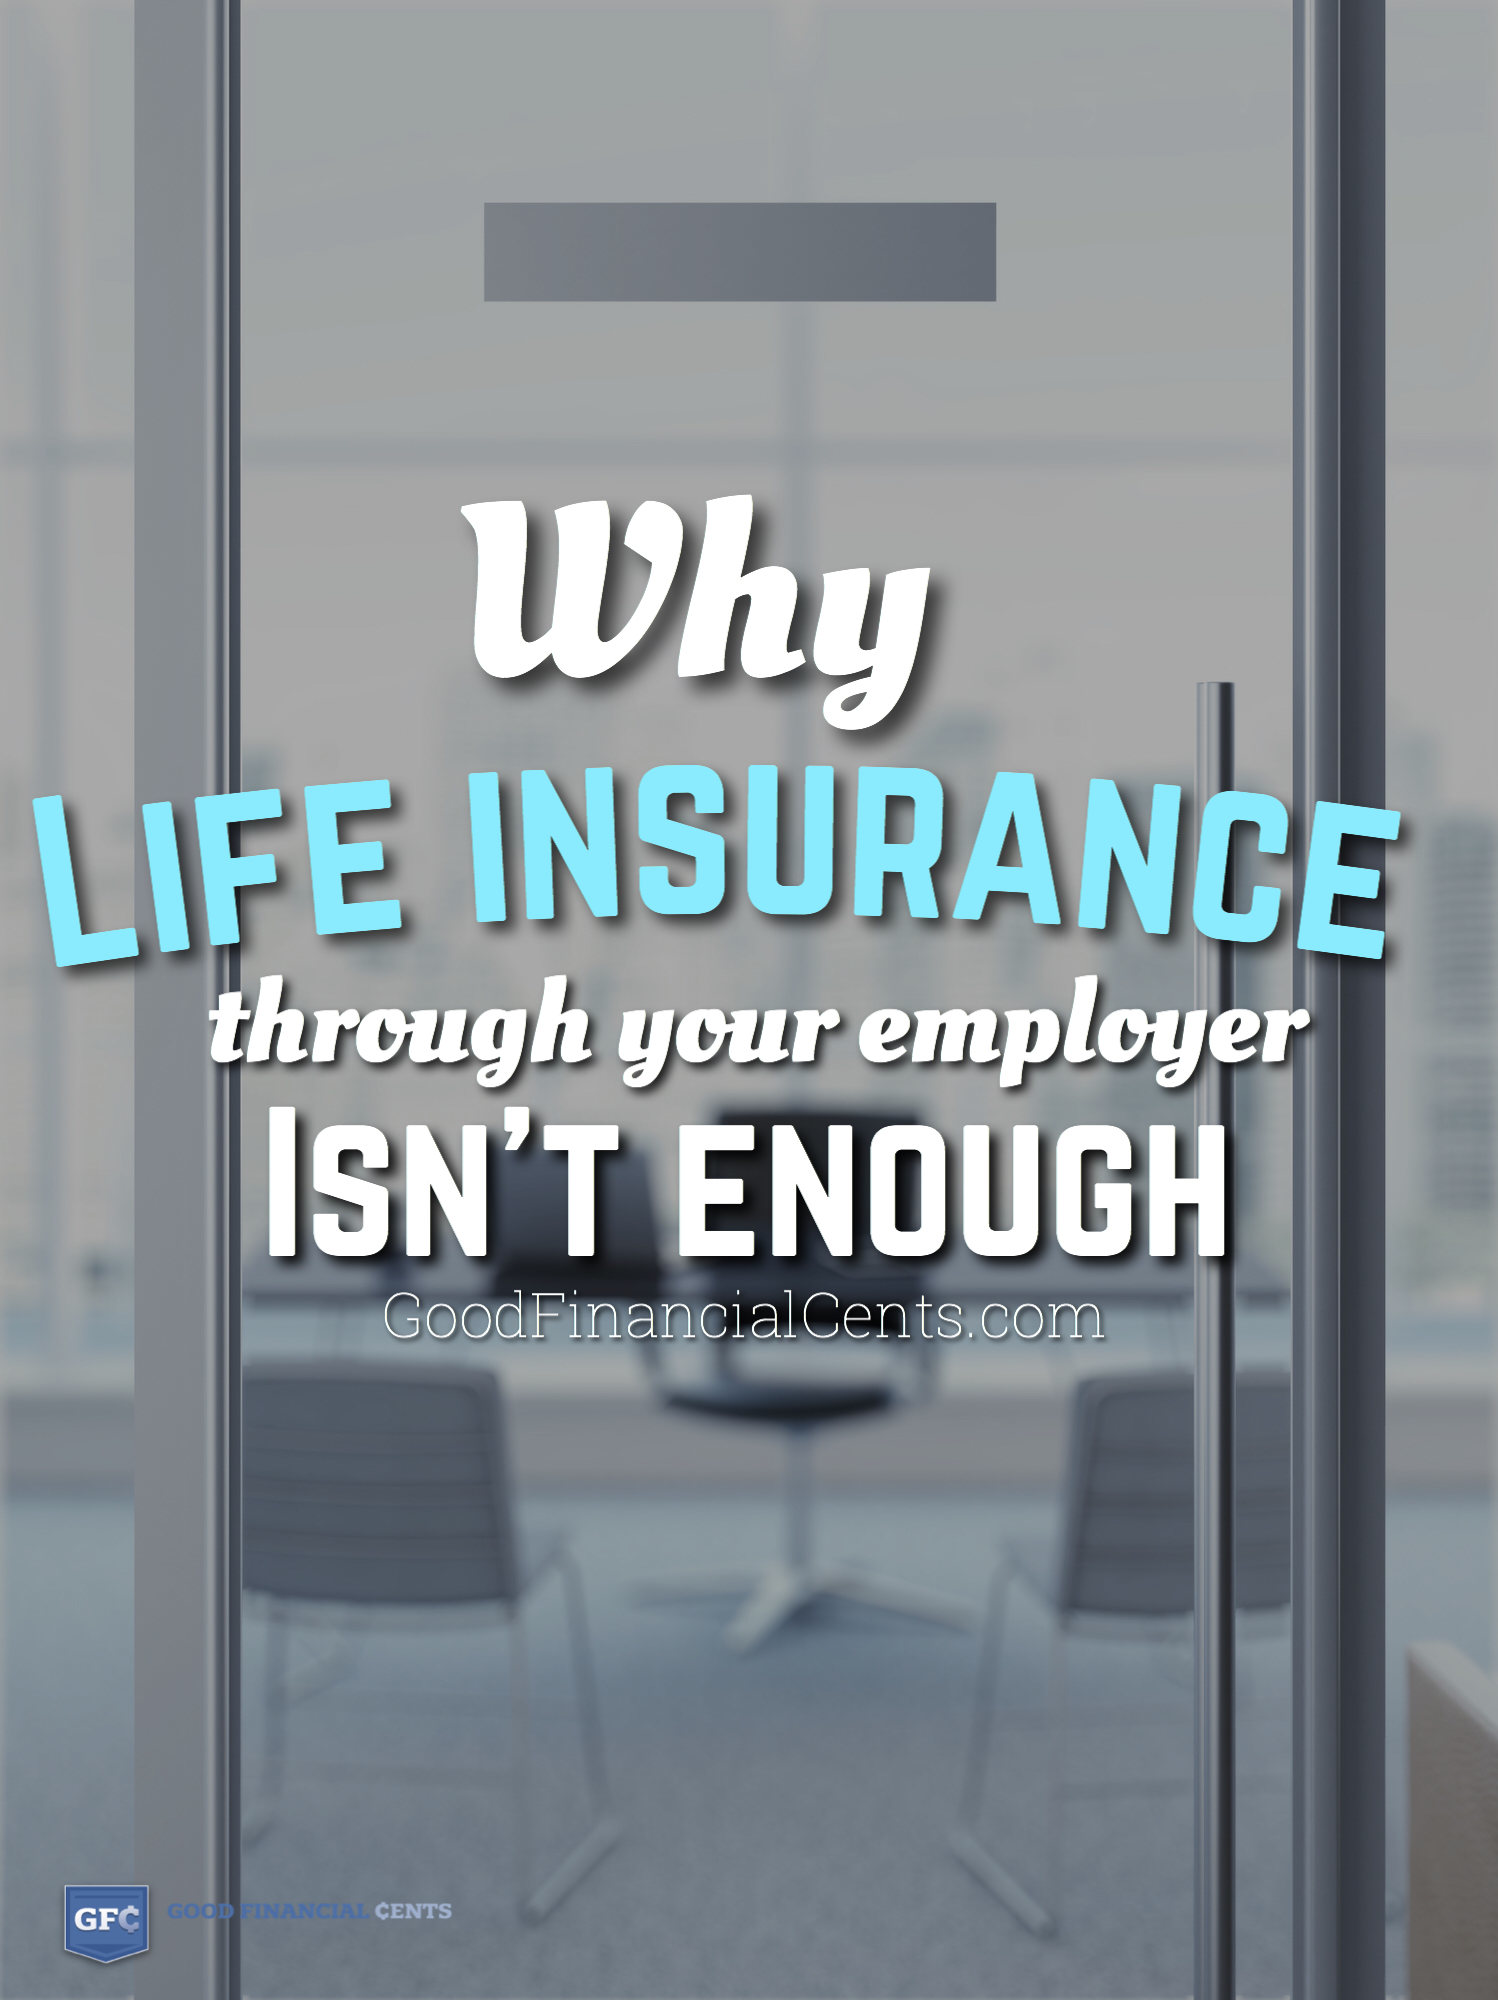 Is It Enough to Have Life Insurance Through Work? - Good ...